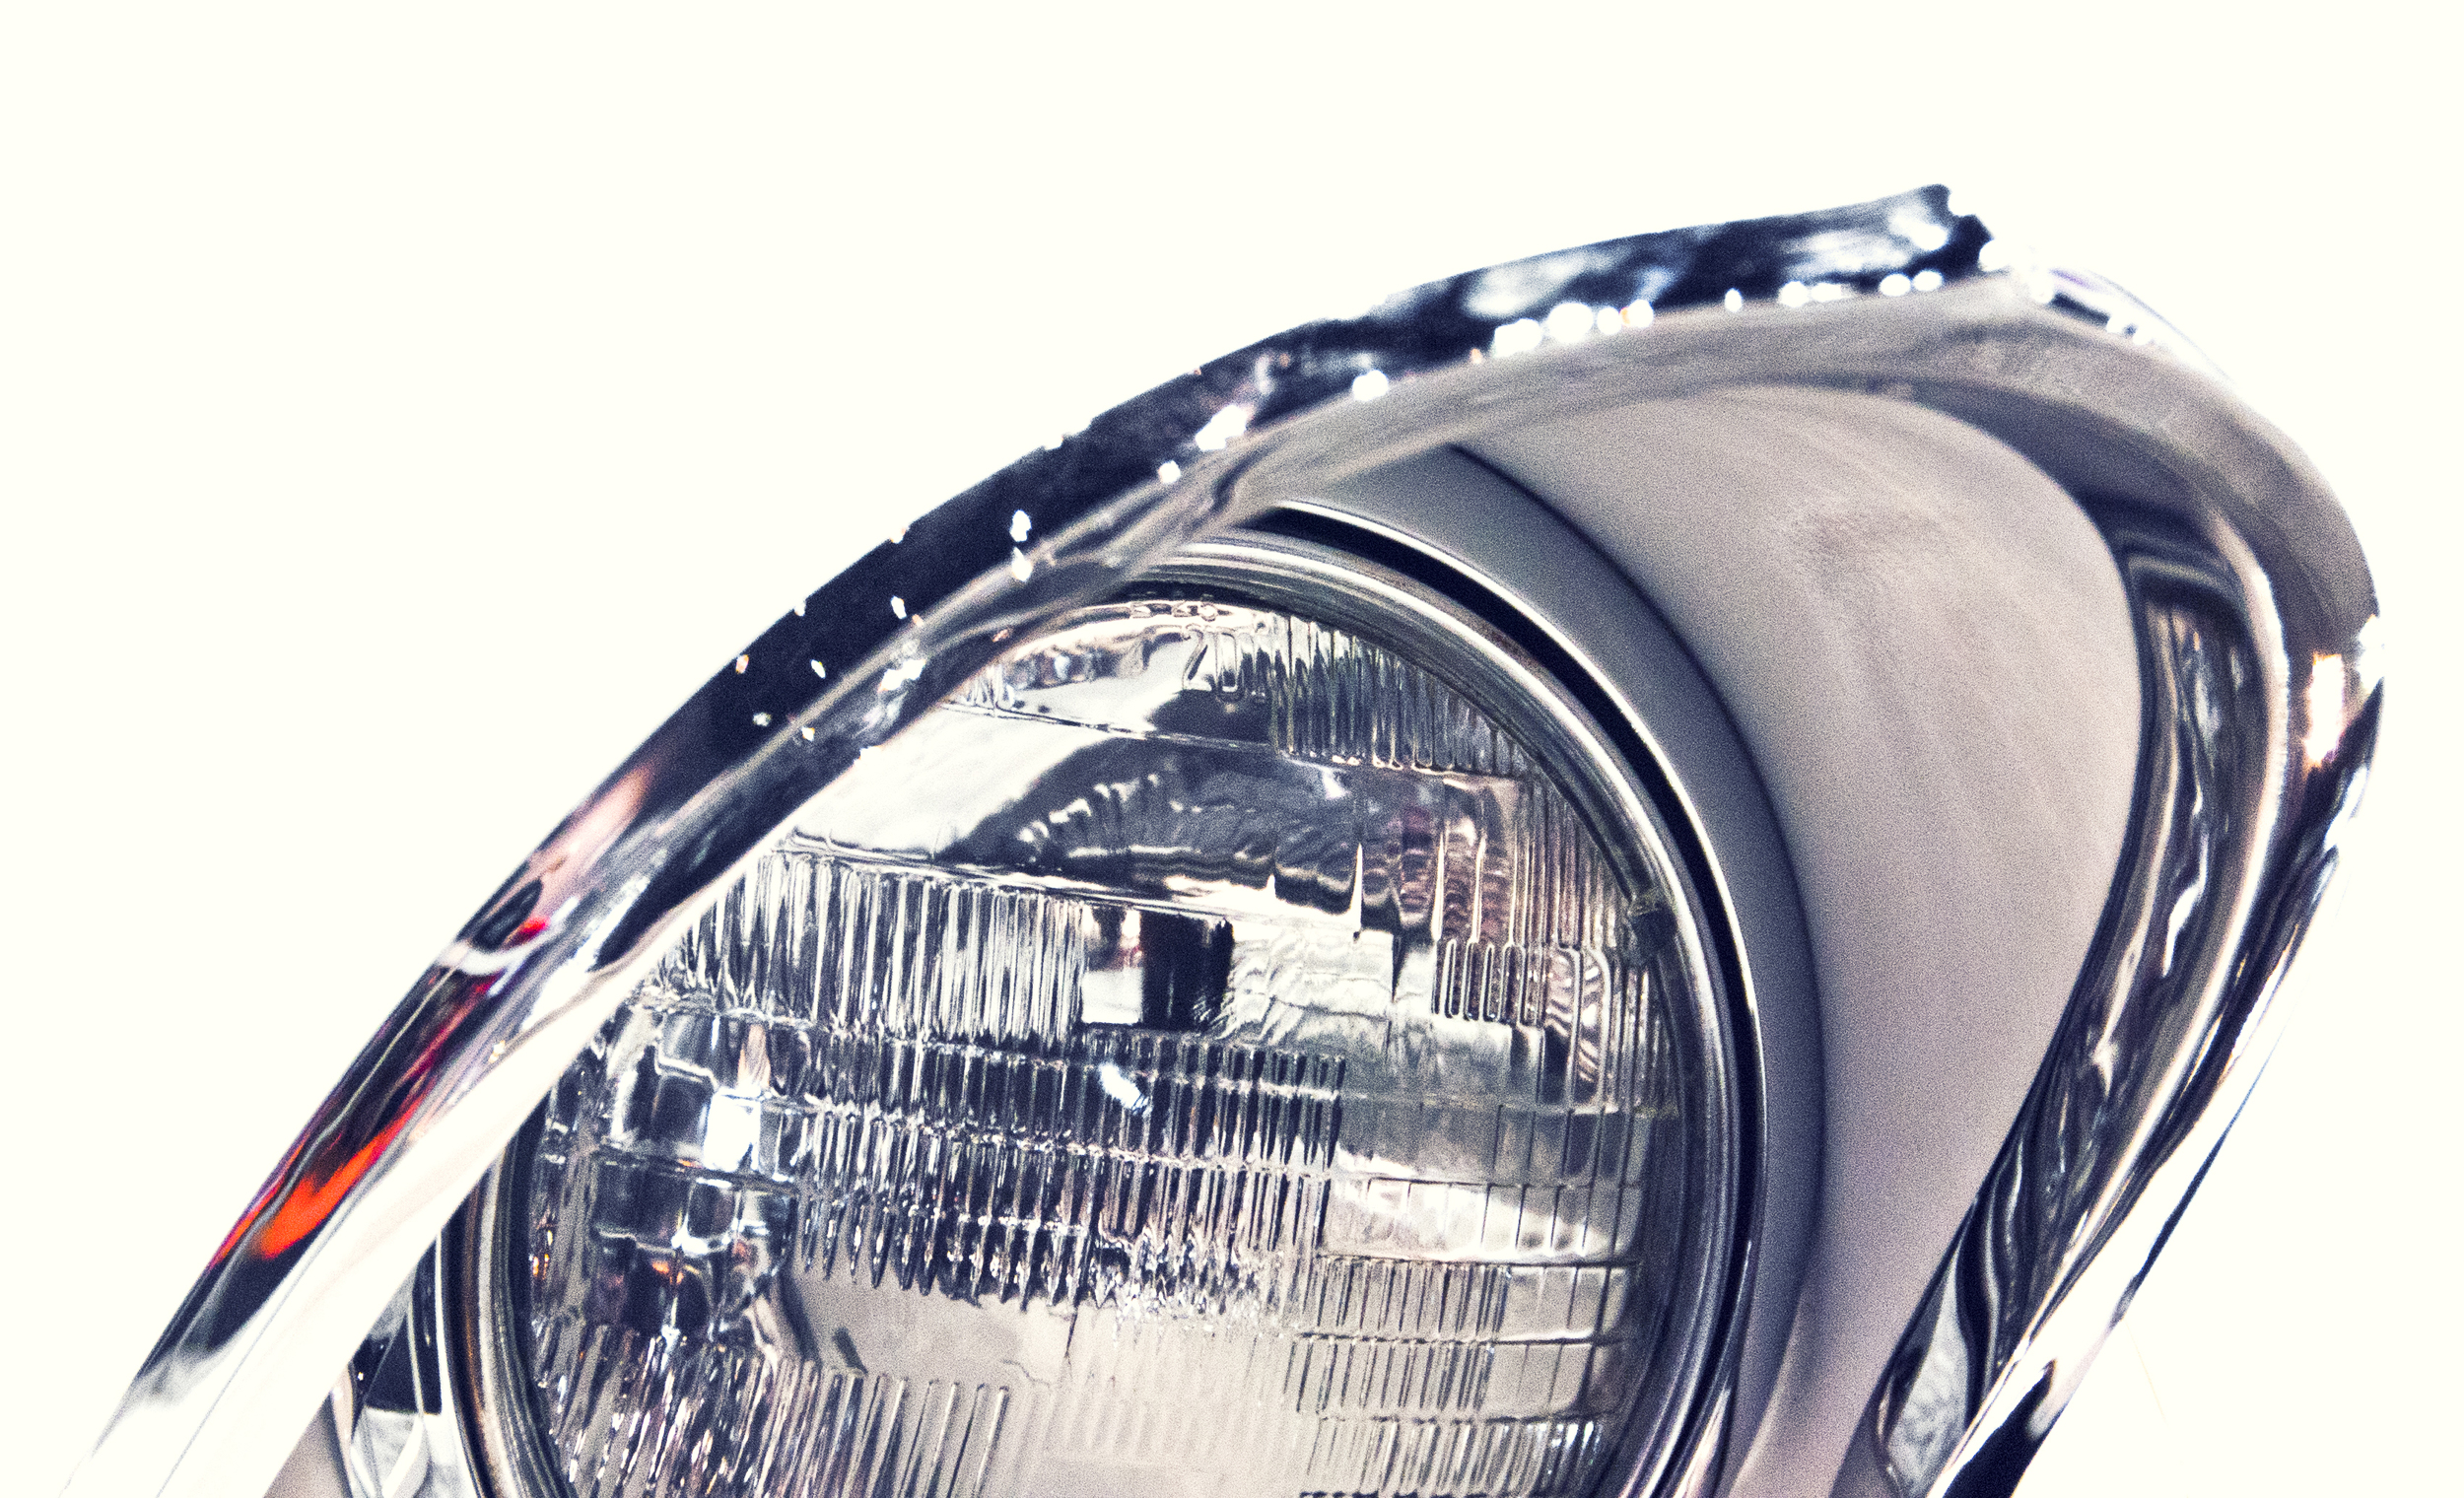 06_head light.jpg